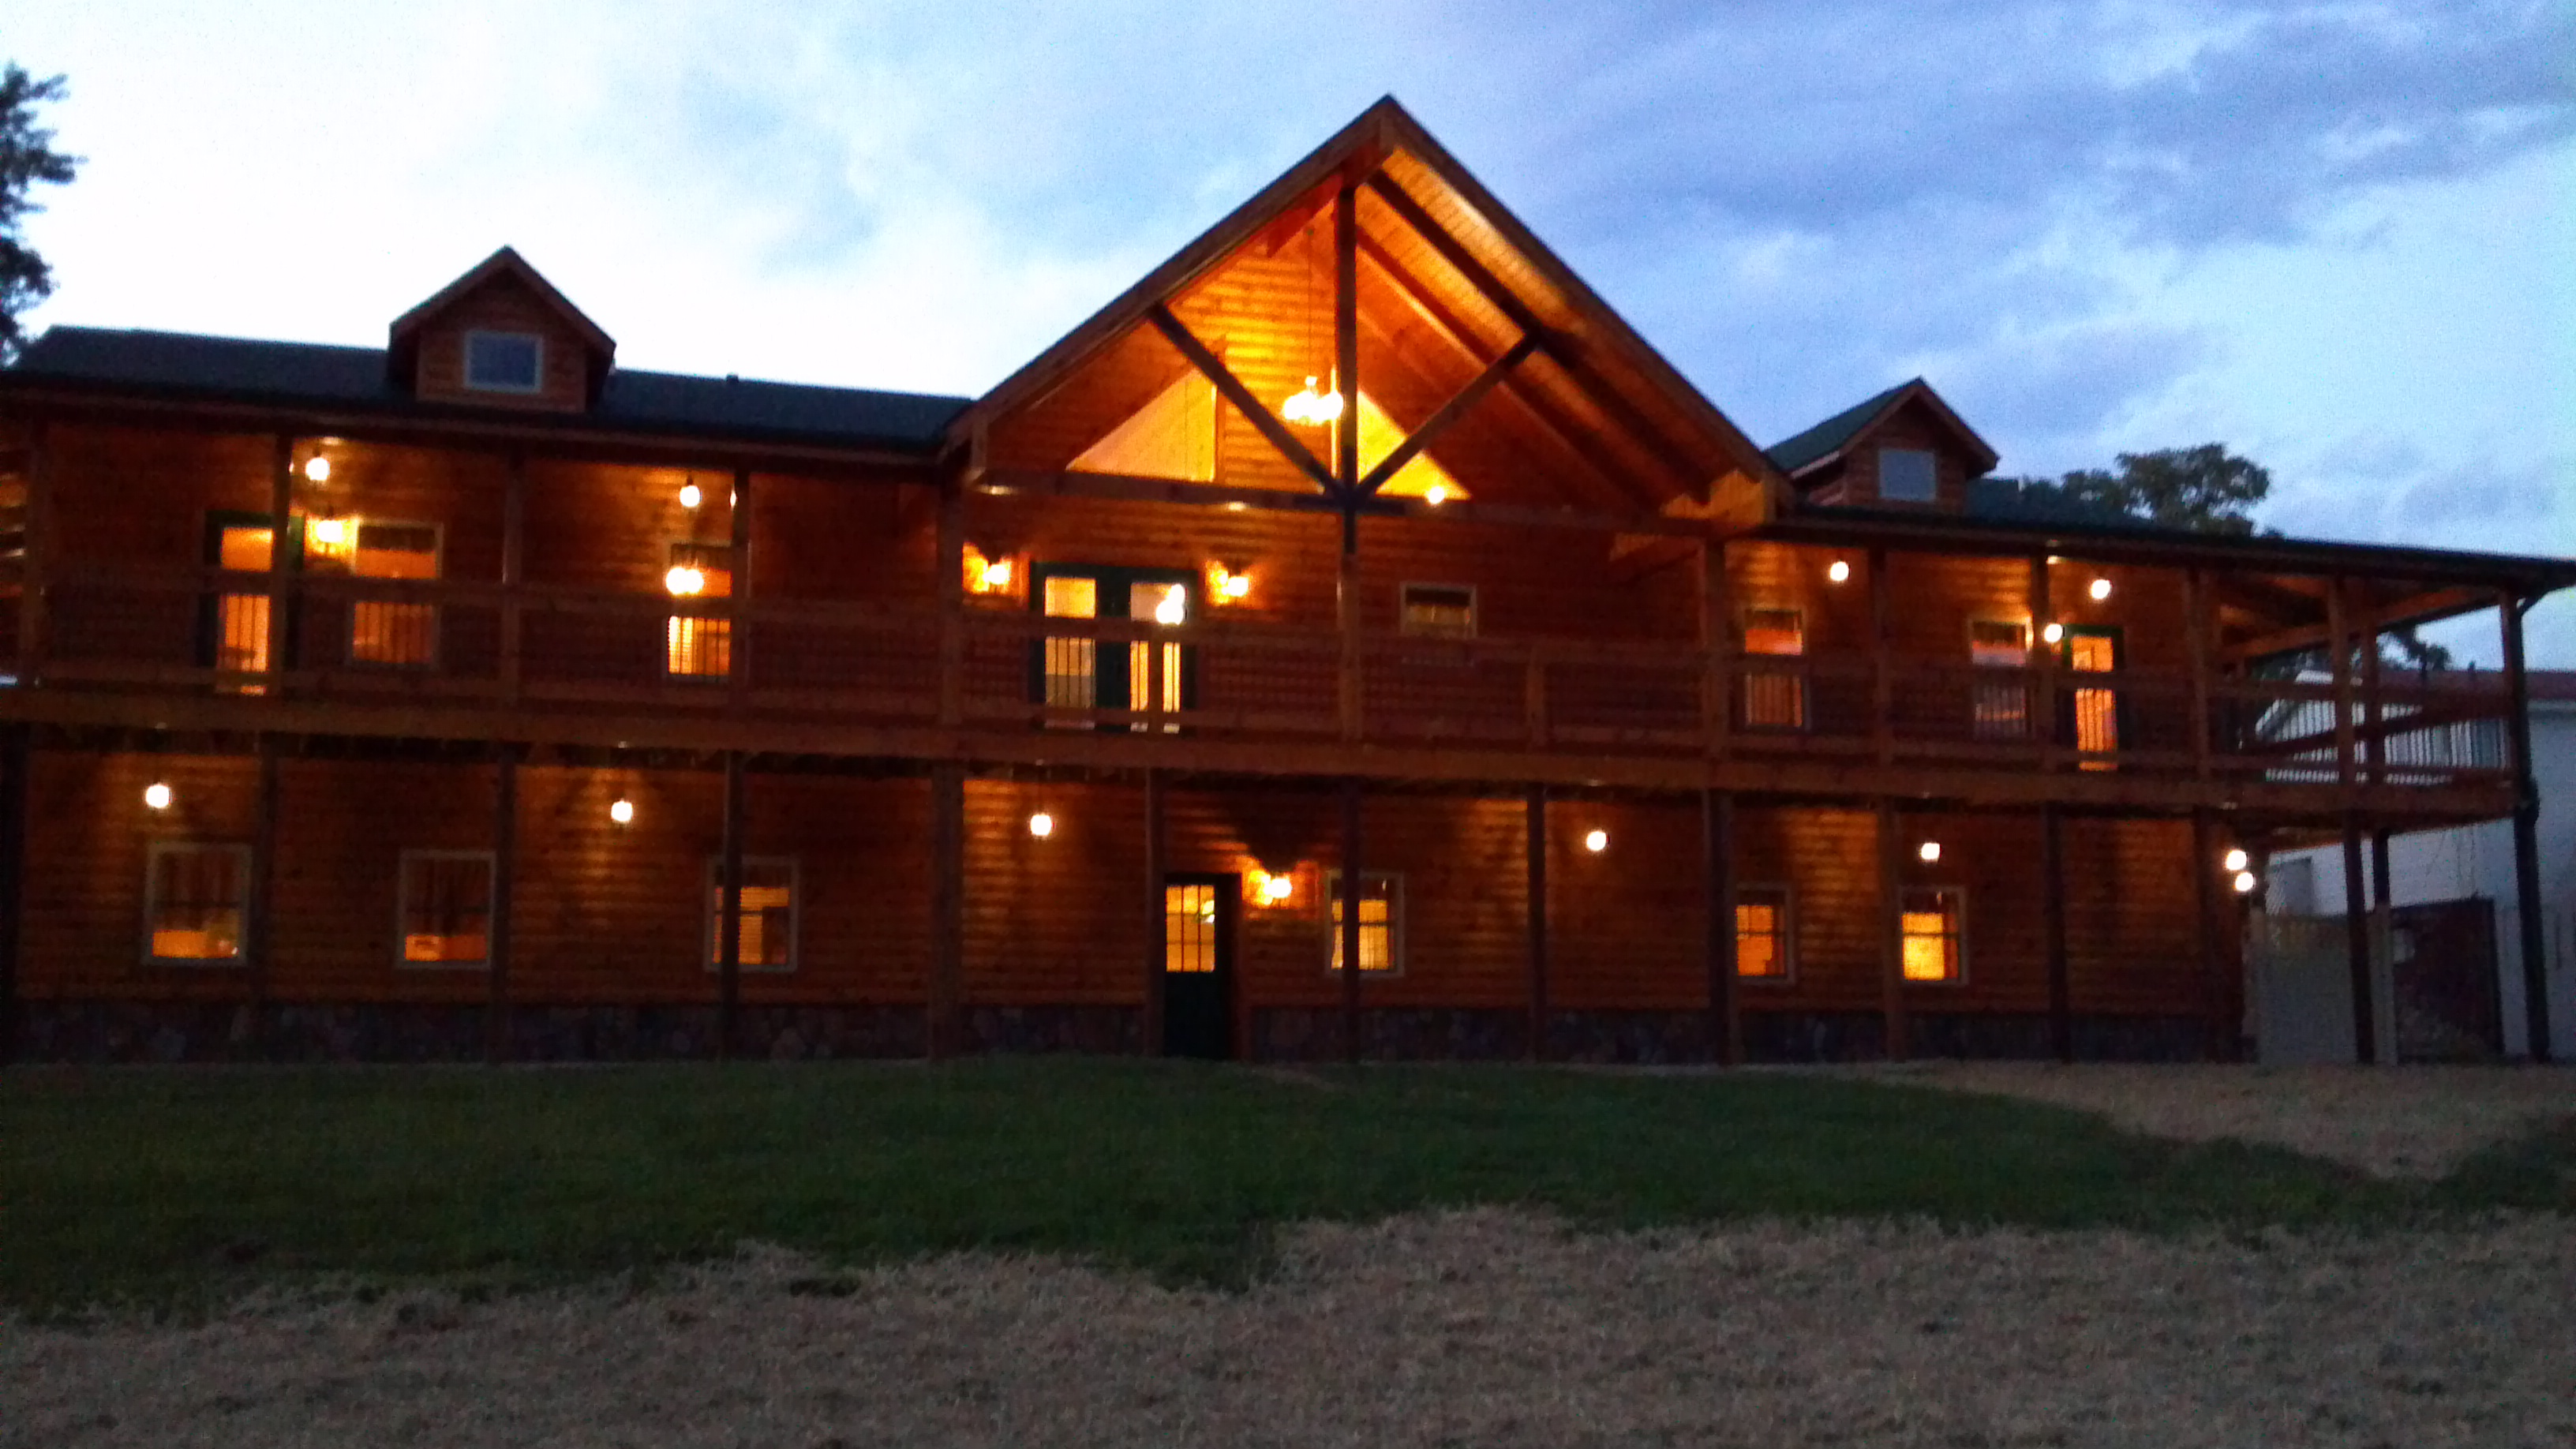 carola virginia va cabin laurel springs cabins tn nc dc boone rentals washington near colorado luxury mountain gatlinburg luray co